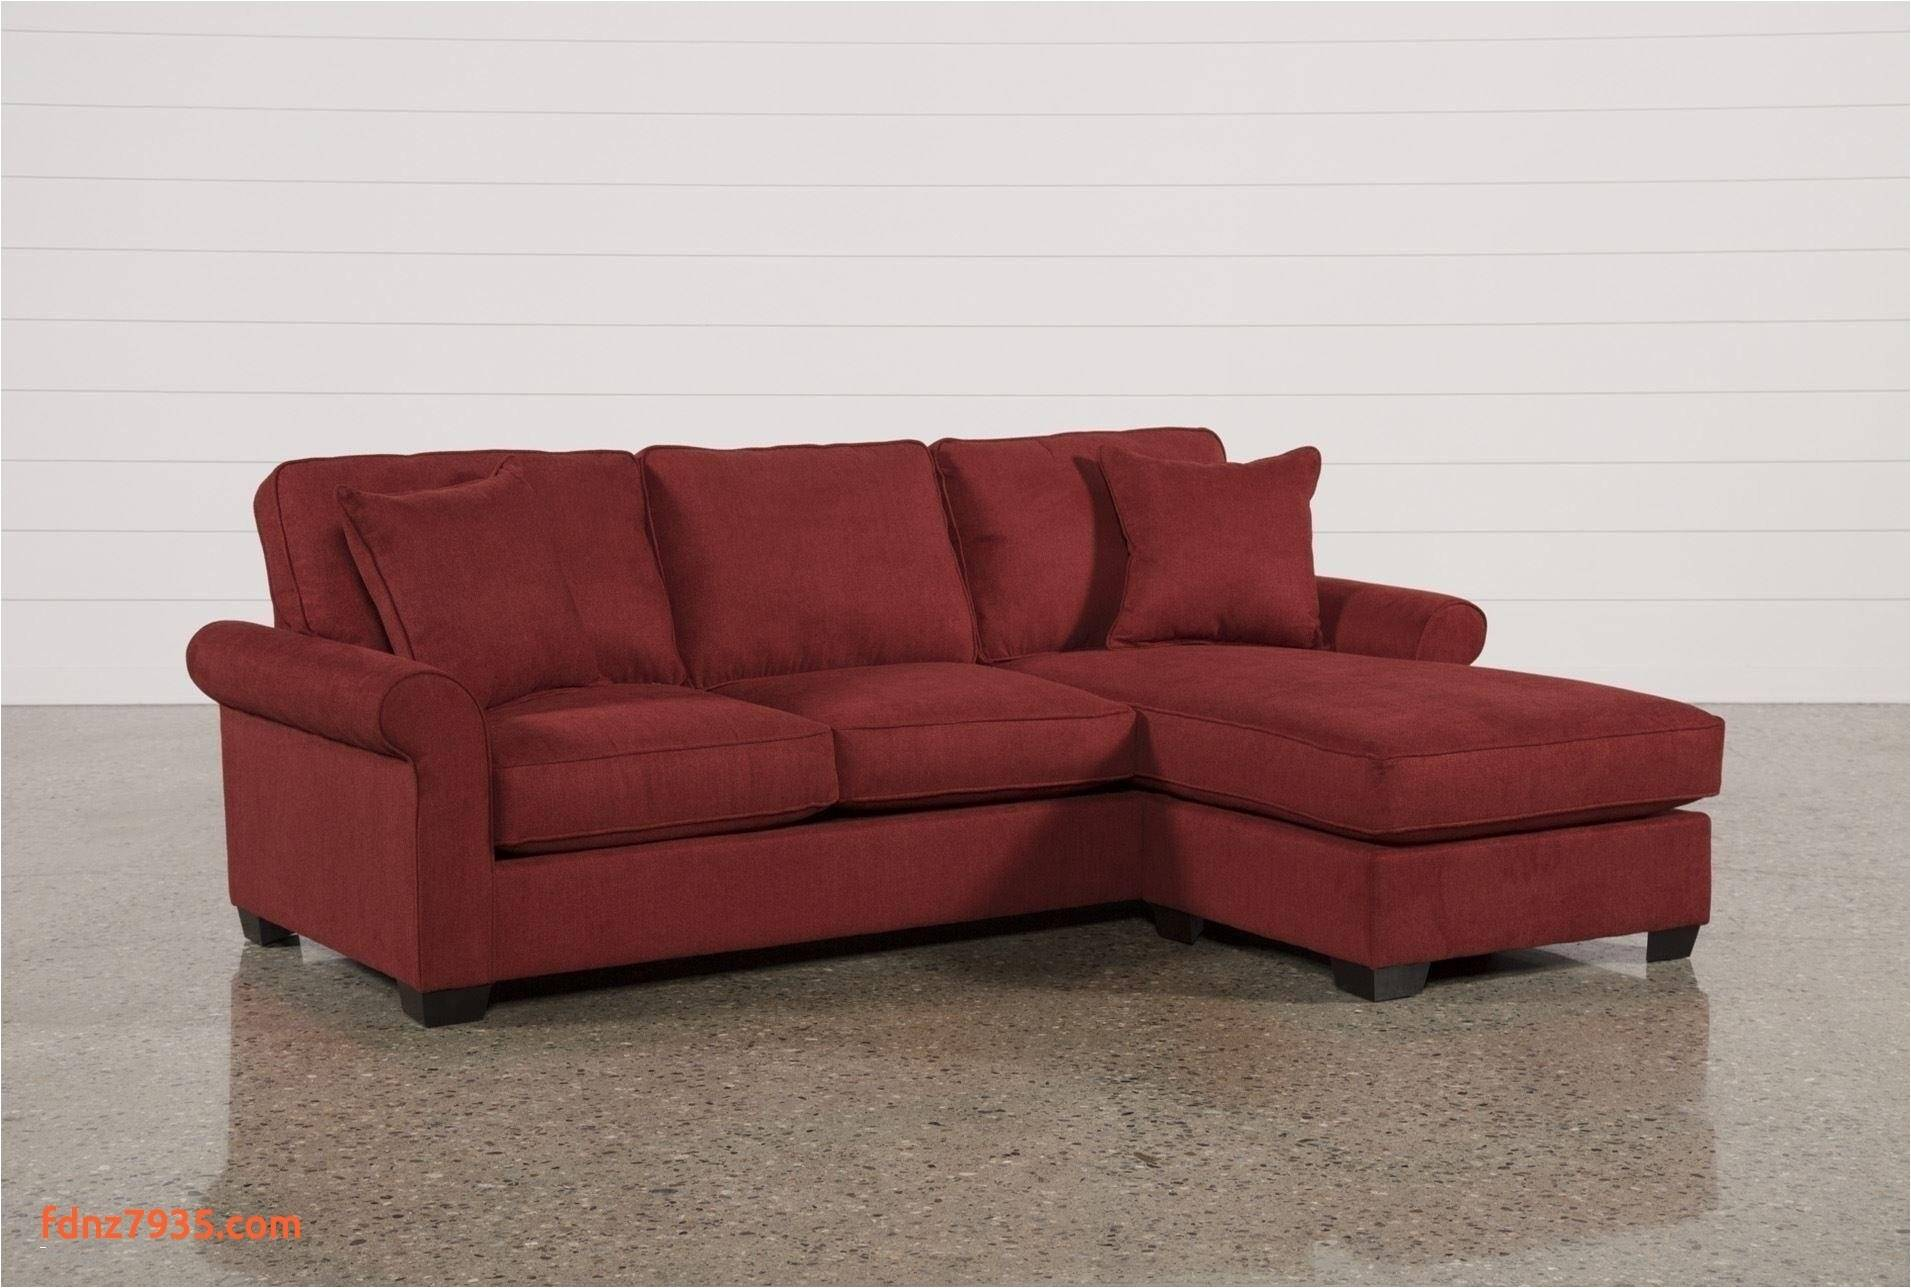 red and black leather sofa red and white sofa fresh sofa design of red and black leather sofa